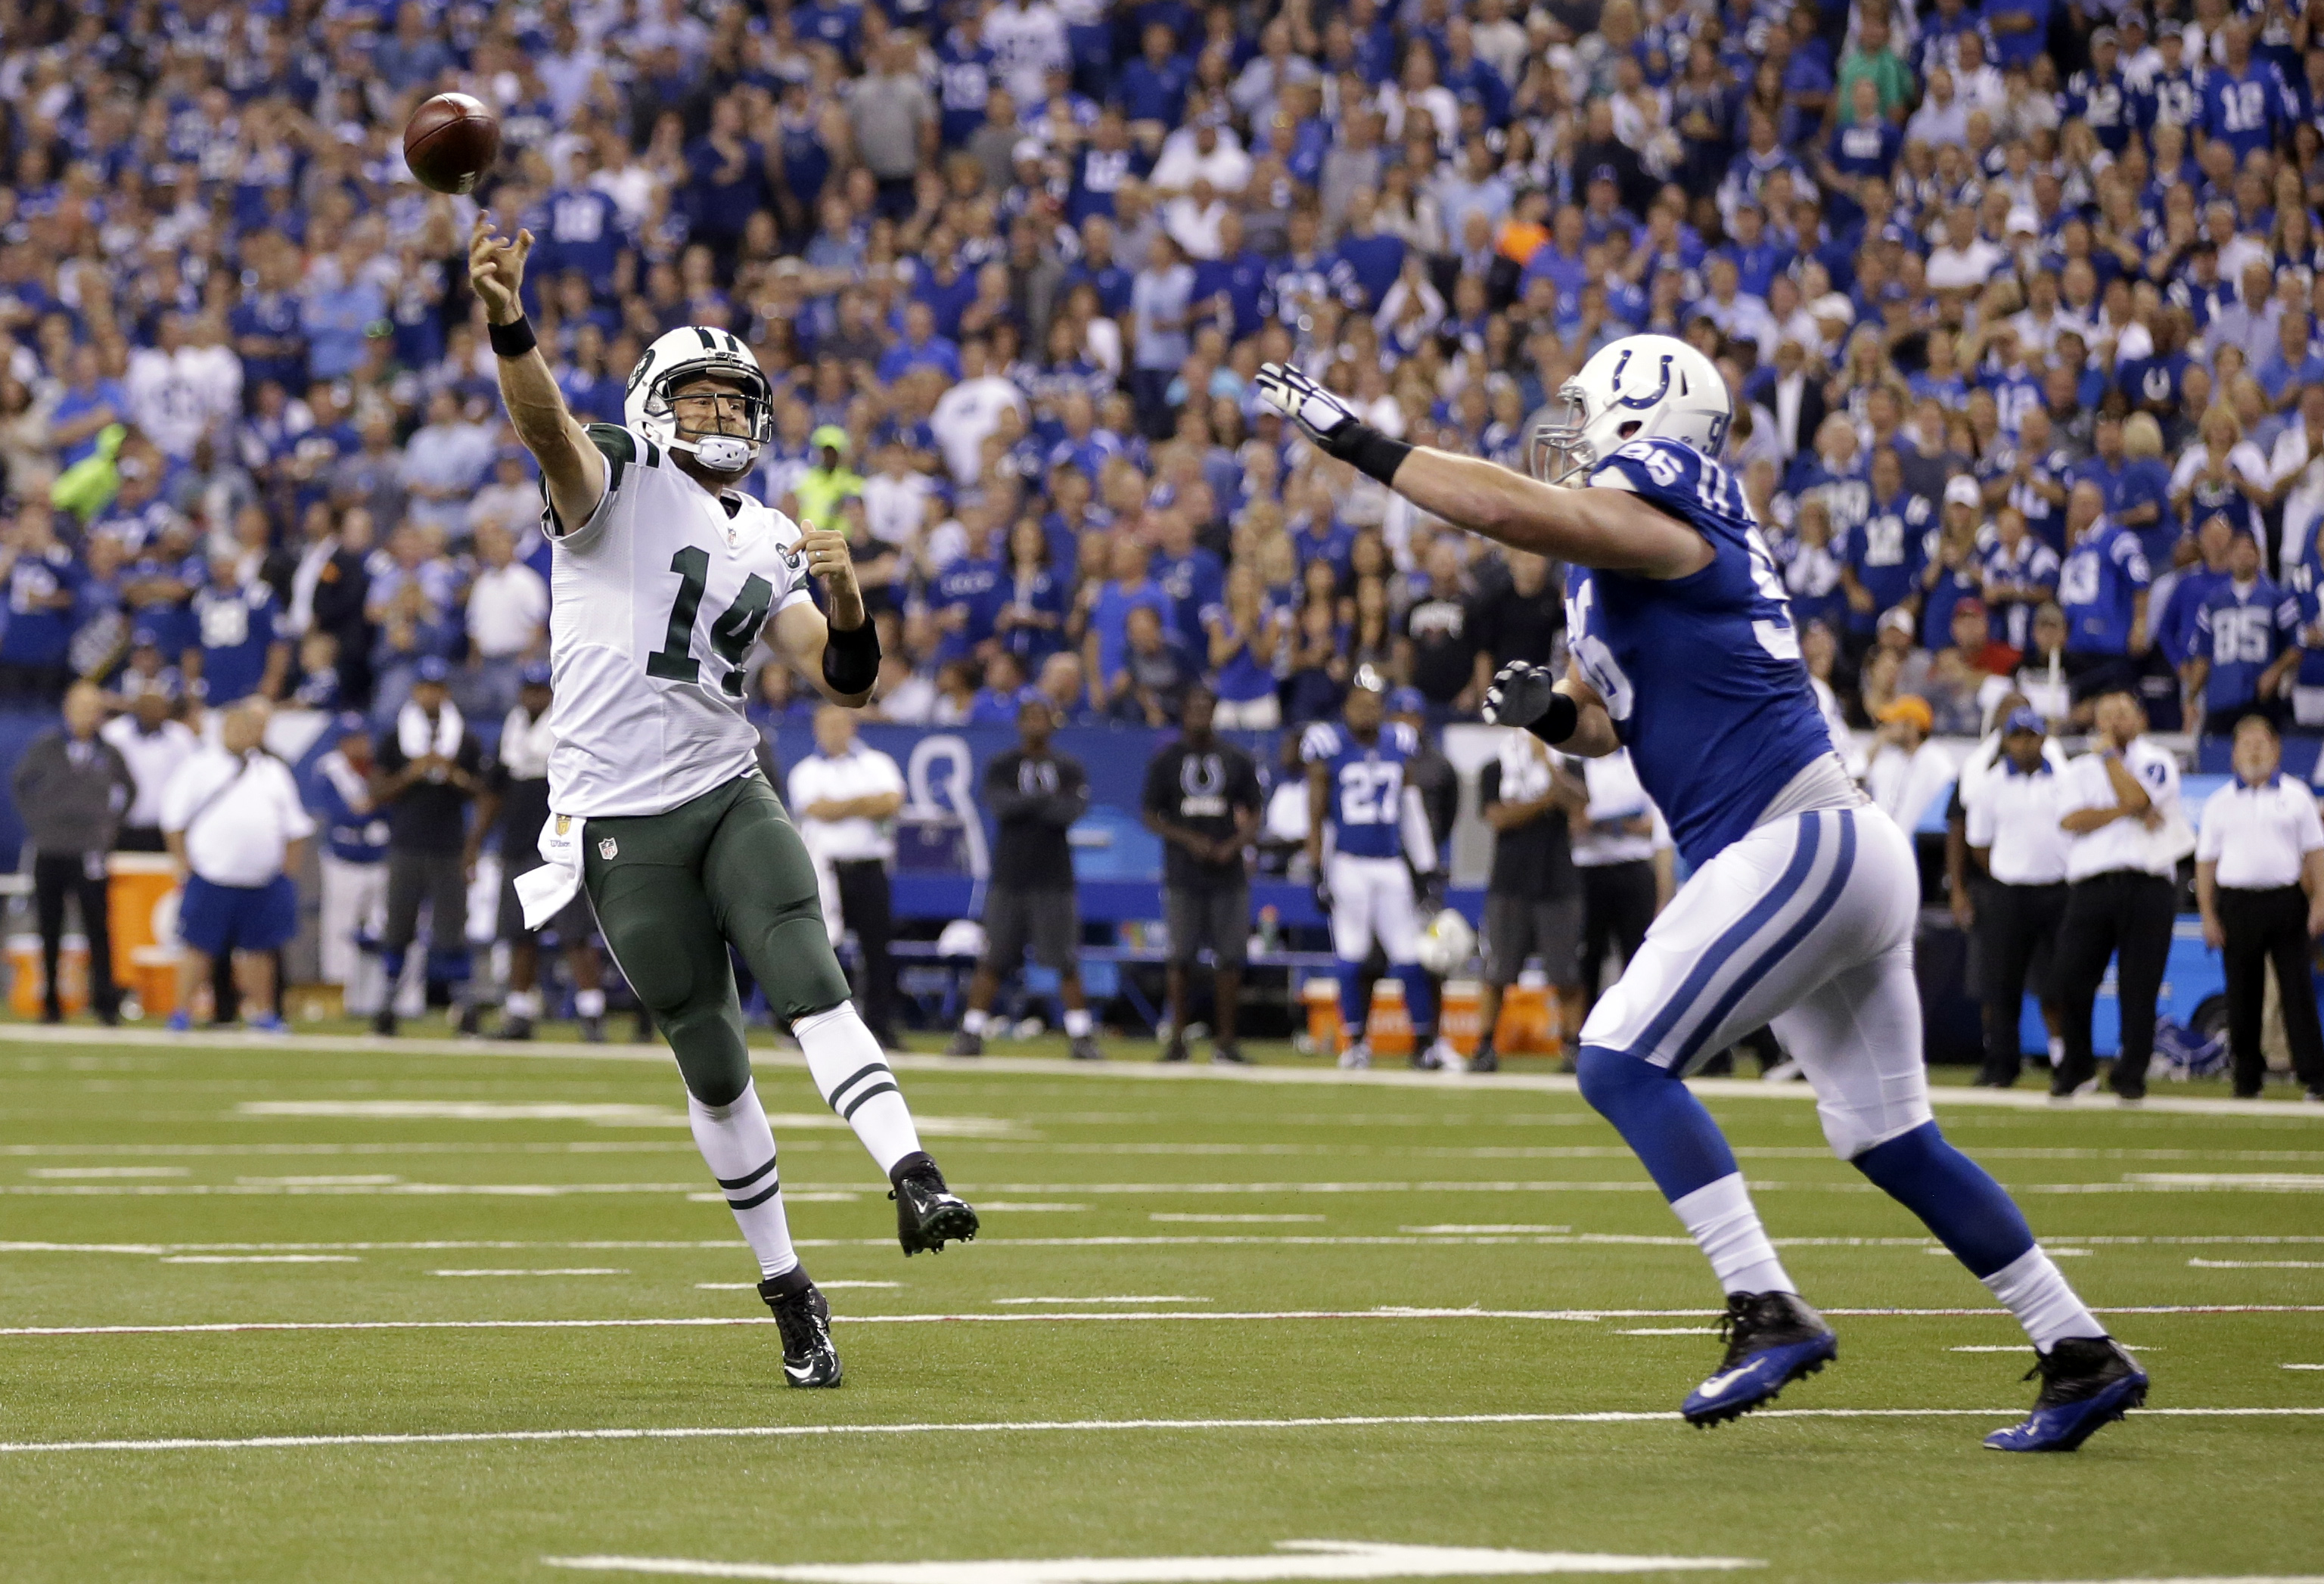 New York Jets quarterback Ryan Fitzpatrick (14) throws for a touchdown over Indianapolis Colts defensive end Henry Anderson (96) in the first half of an NFL football game in Indianapolis, Monday, Sept. 21, 2015. (AP Photo/Darron Cummings)